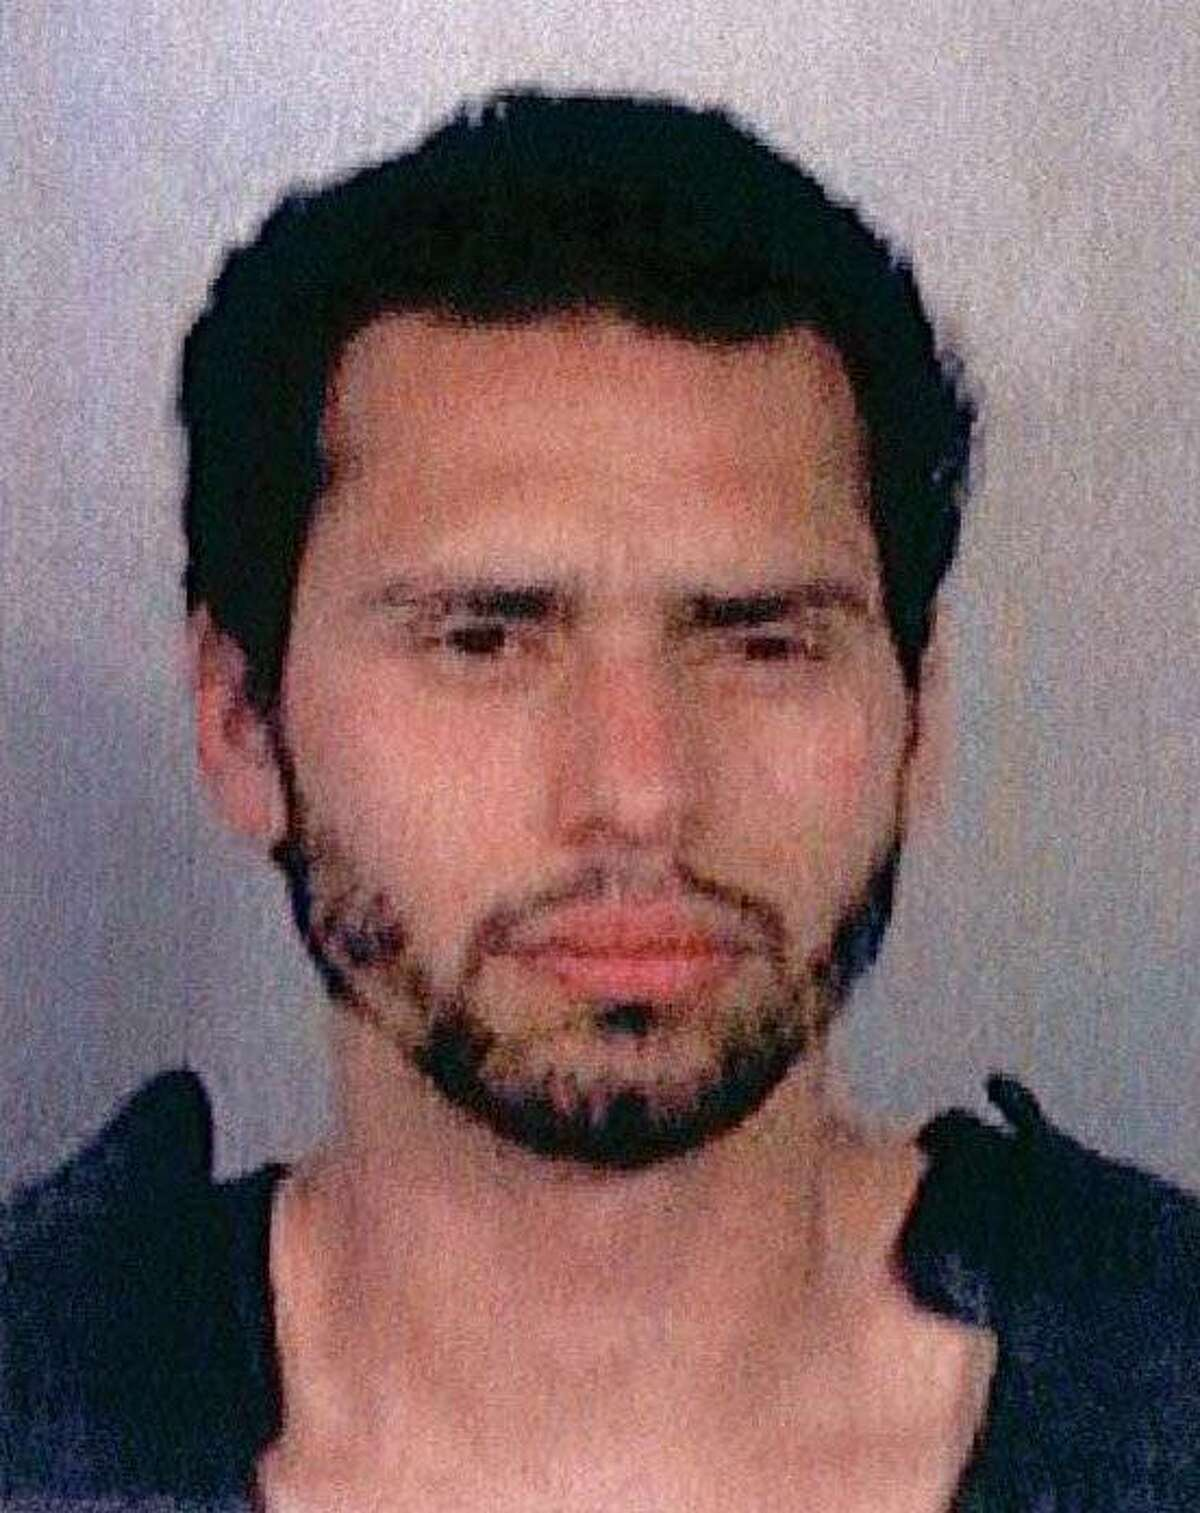 Police arrested Adam Disa, a 28-year-old Benicia resident, in connection with the death of Katherine Gillihan, his 26-year-old girlfriend, late Friday.